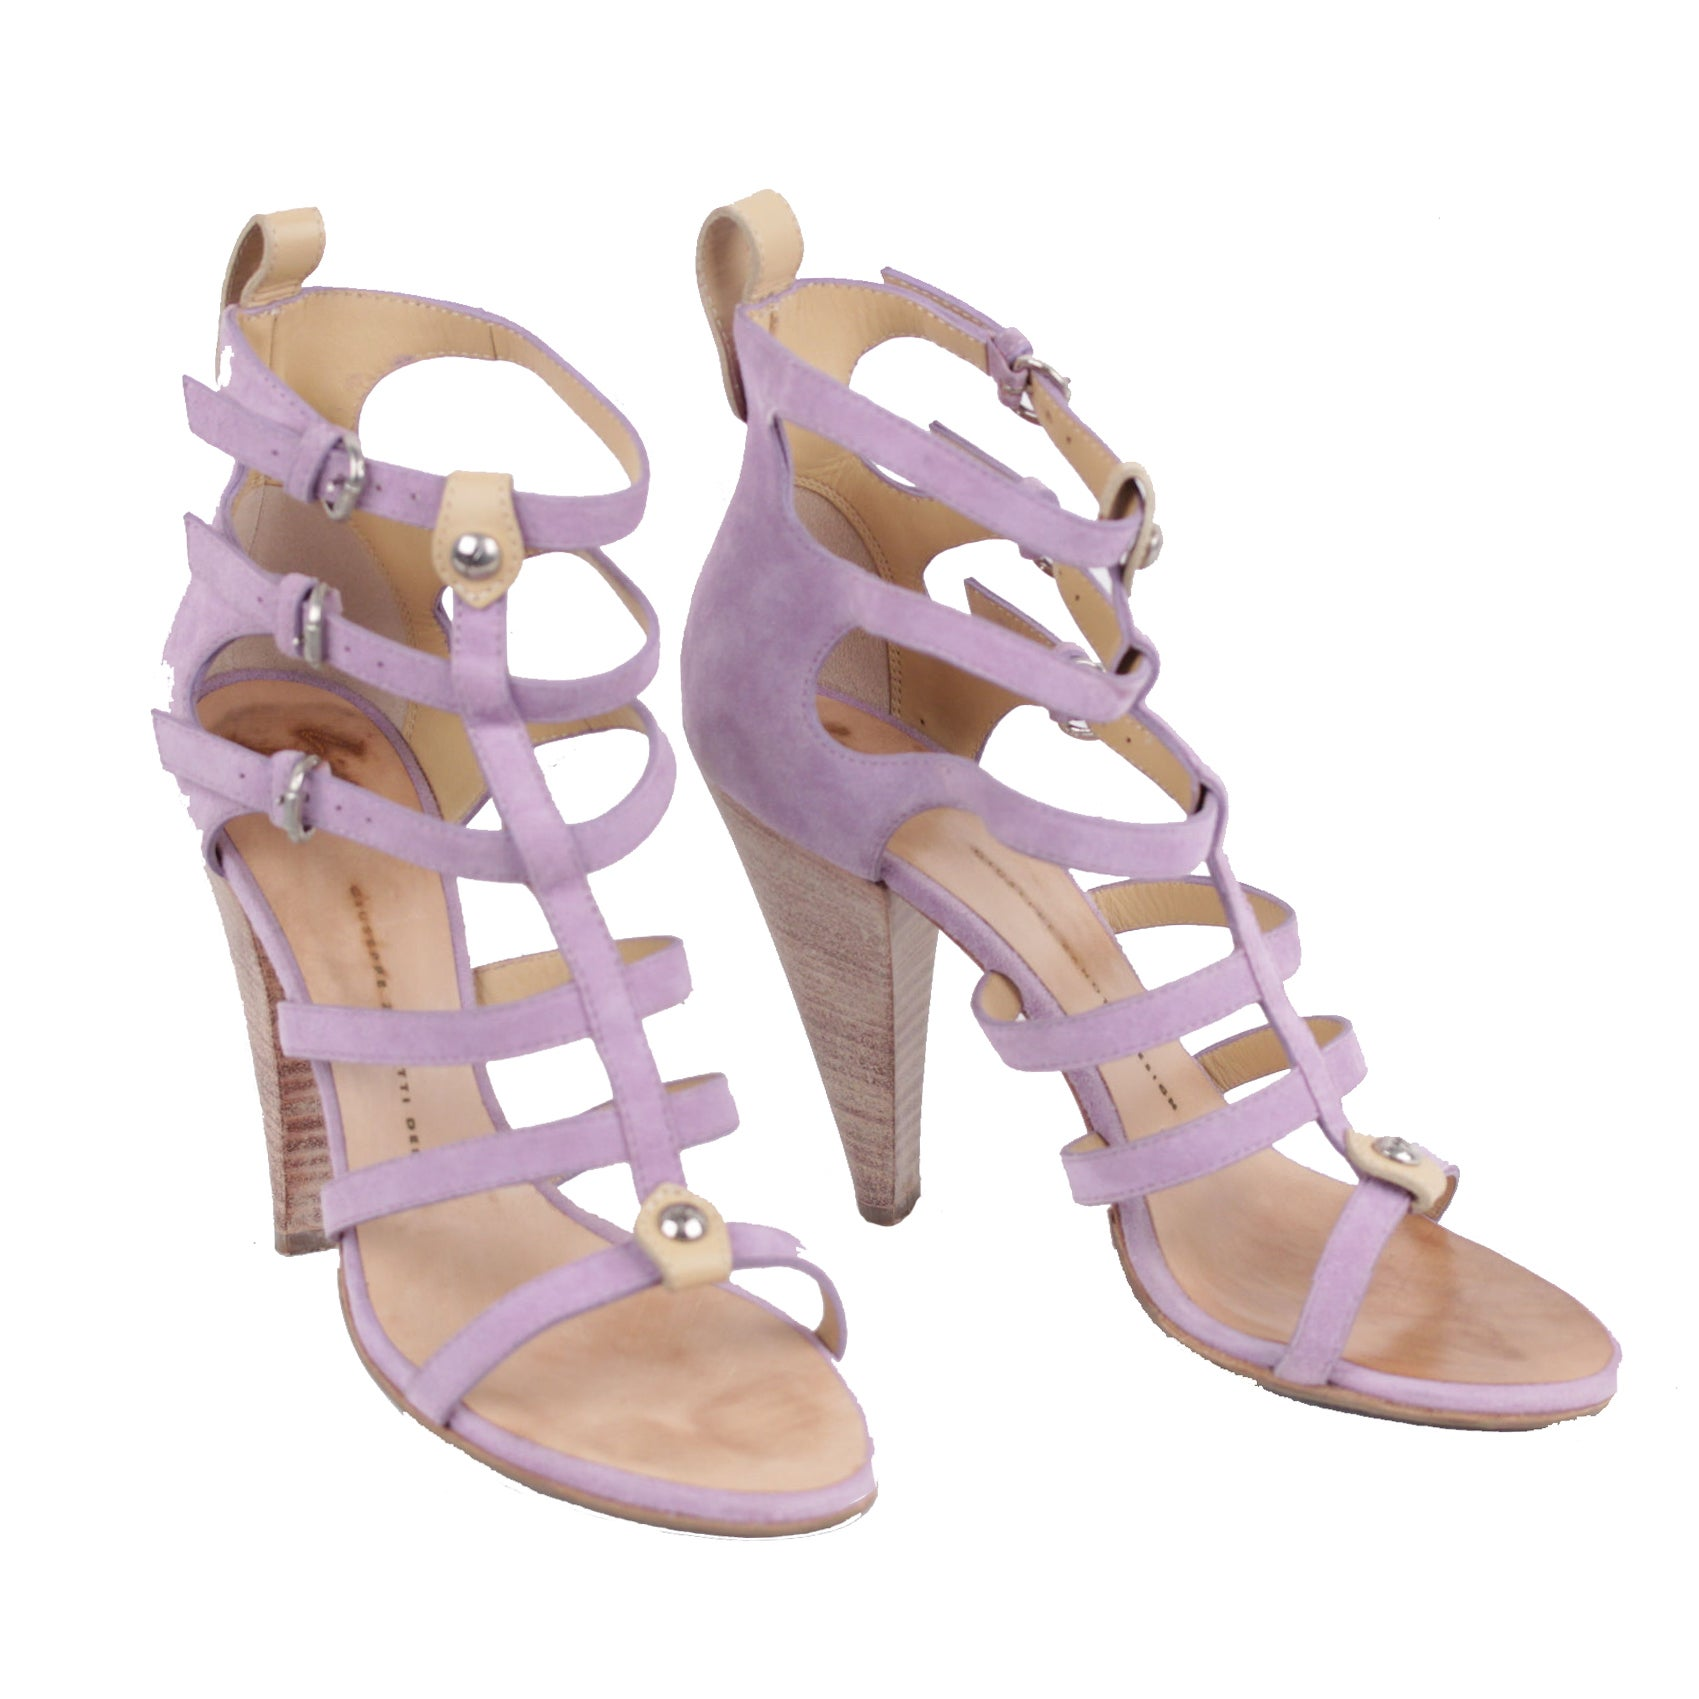 706ef929a10b Giuseppe zanotti design lilac suede cage strappy heeled sandals heels for  sale at stdibs jpg 1699x1699